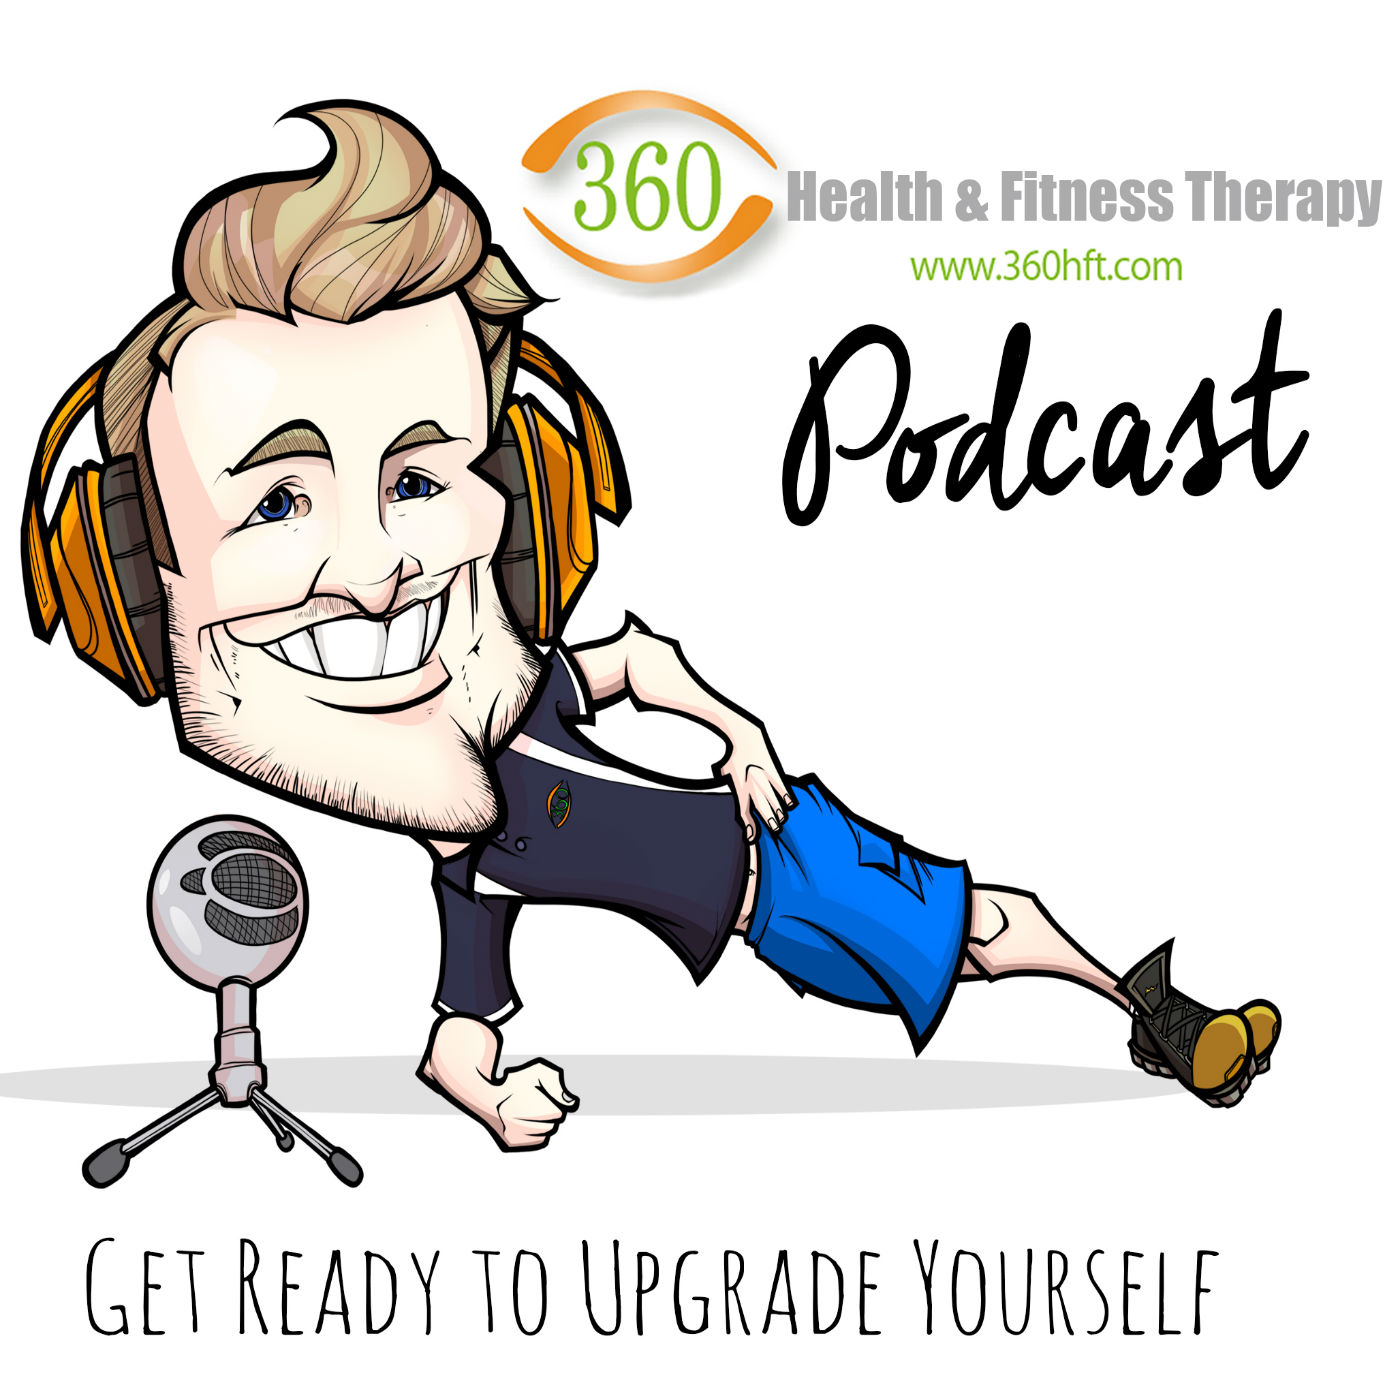 The 360 Health and Fitness Therapy Podcast